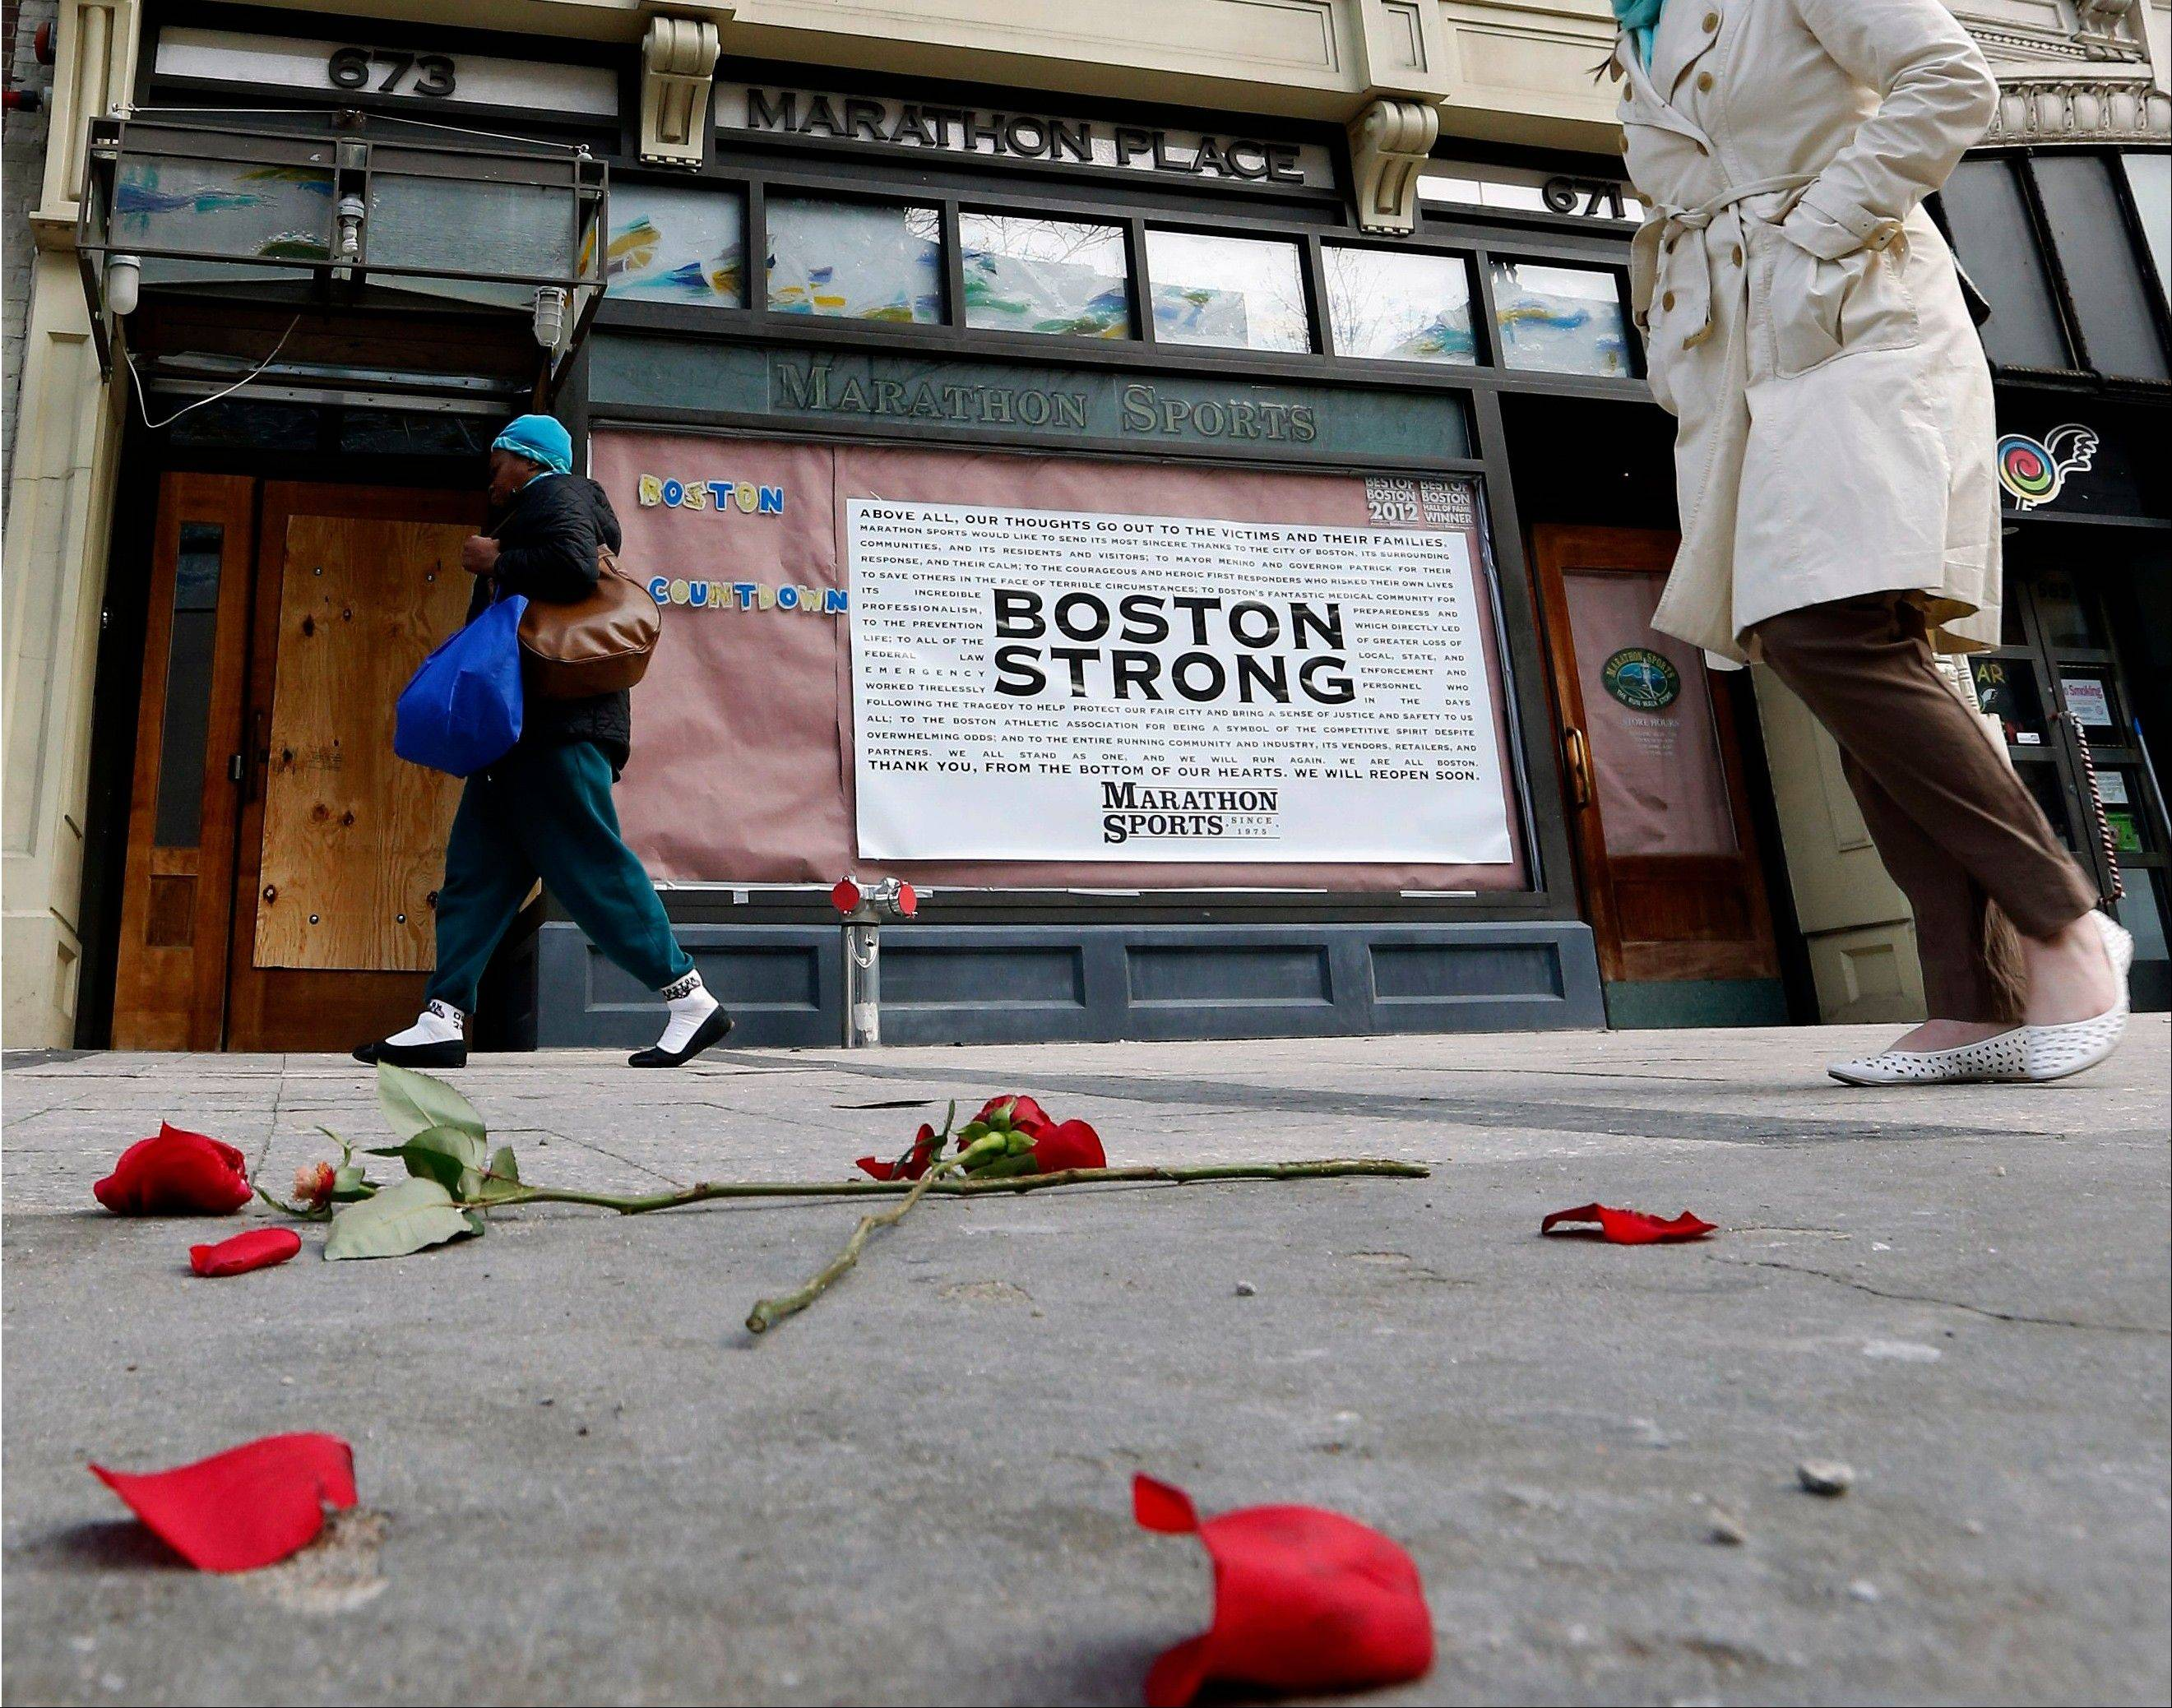 Pedestrians pass the spot where the first bomb detonated on Boylston Street near the finish line of the Boston Marathon Wednesday, April 24, 2013, in Boston. Traffic was allowed to flow all the way down Boylston Street on Wednesday morning for the first time since two explosions killed 3 people and injured many on April 15.